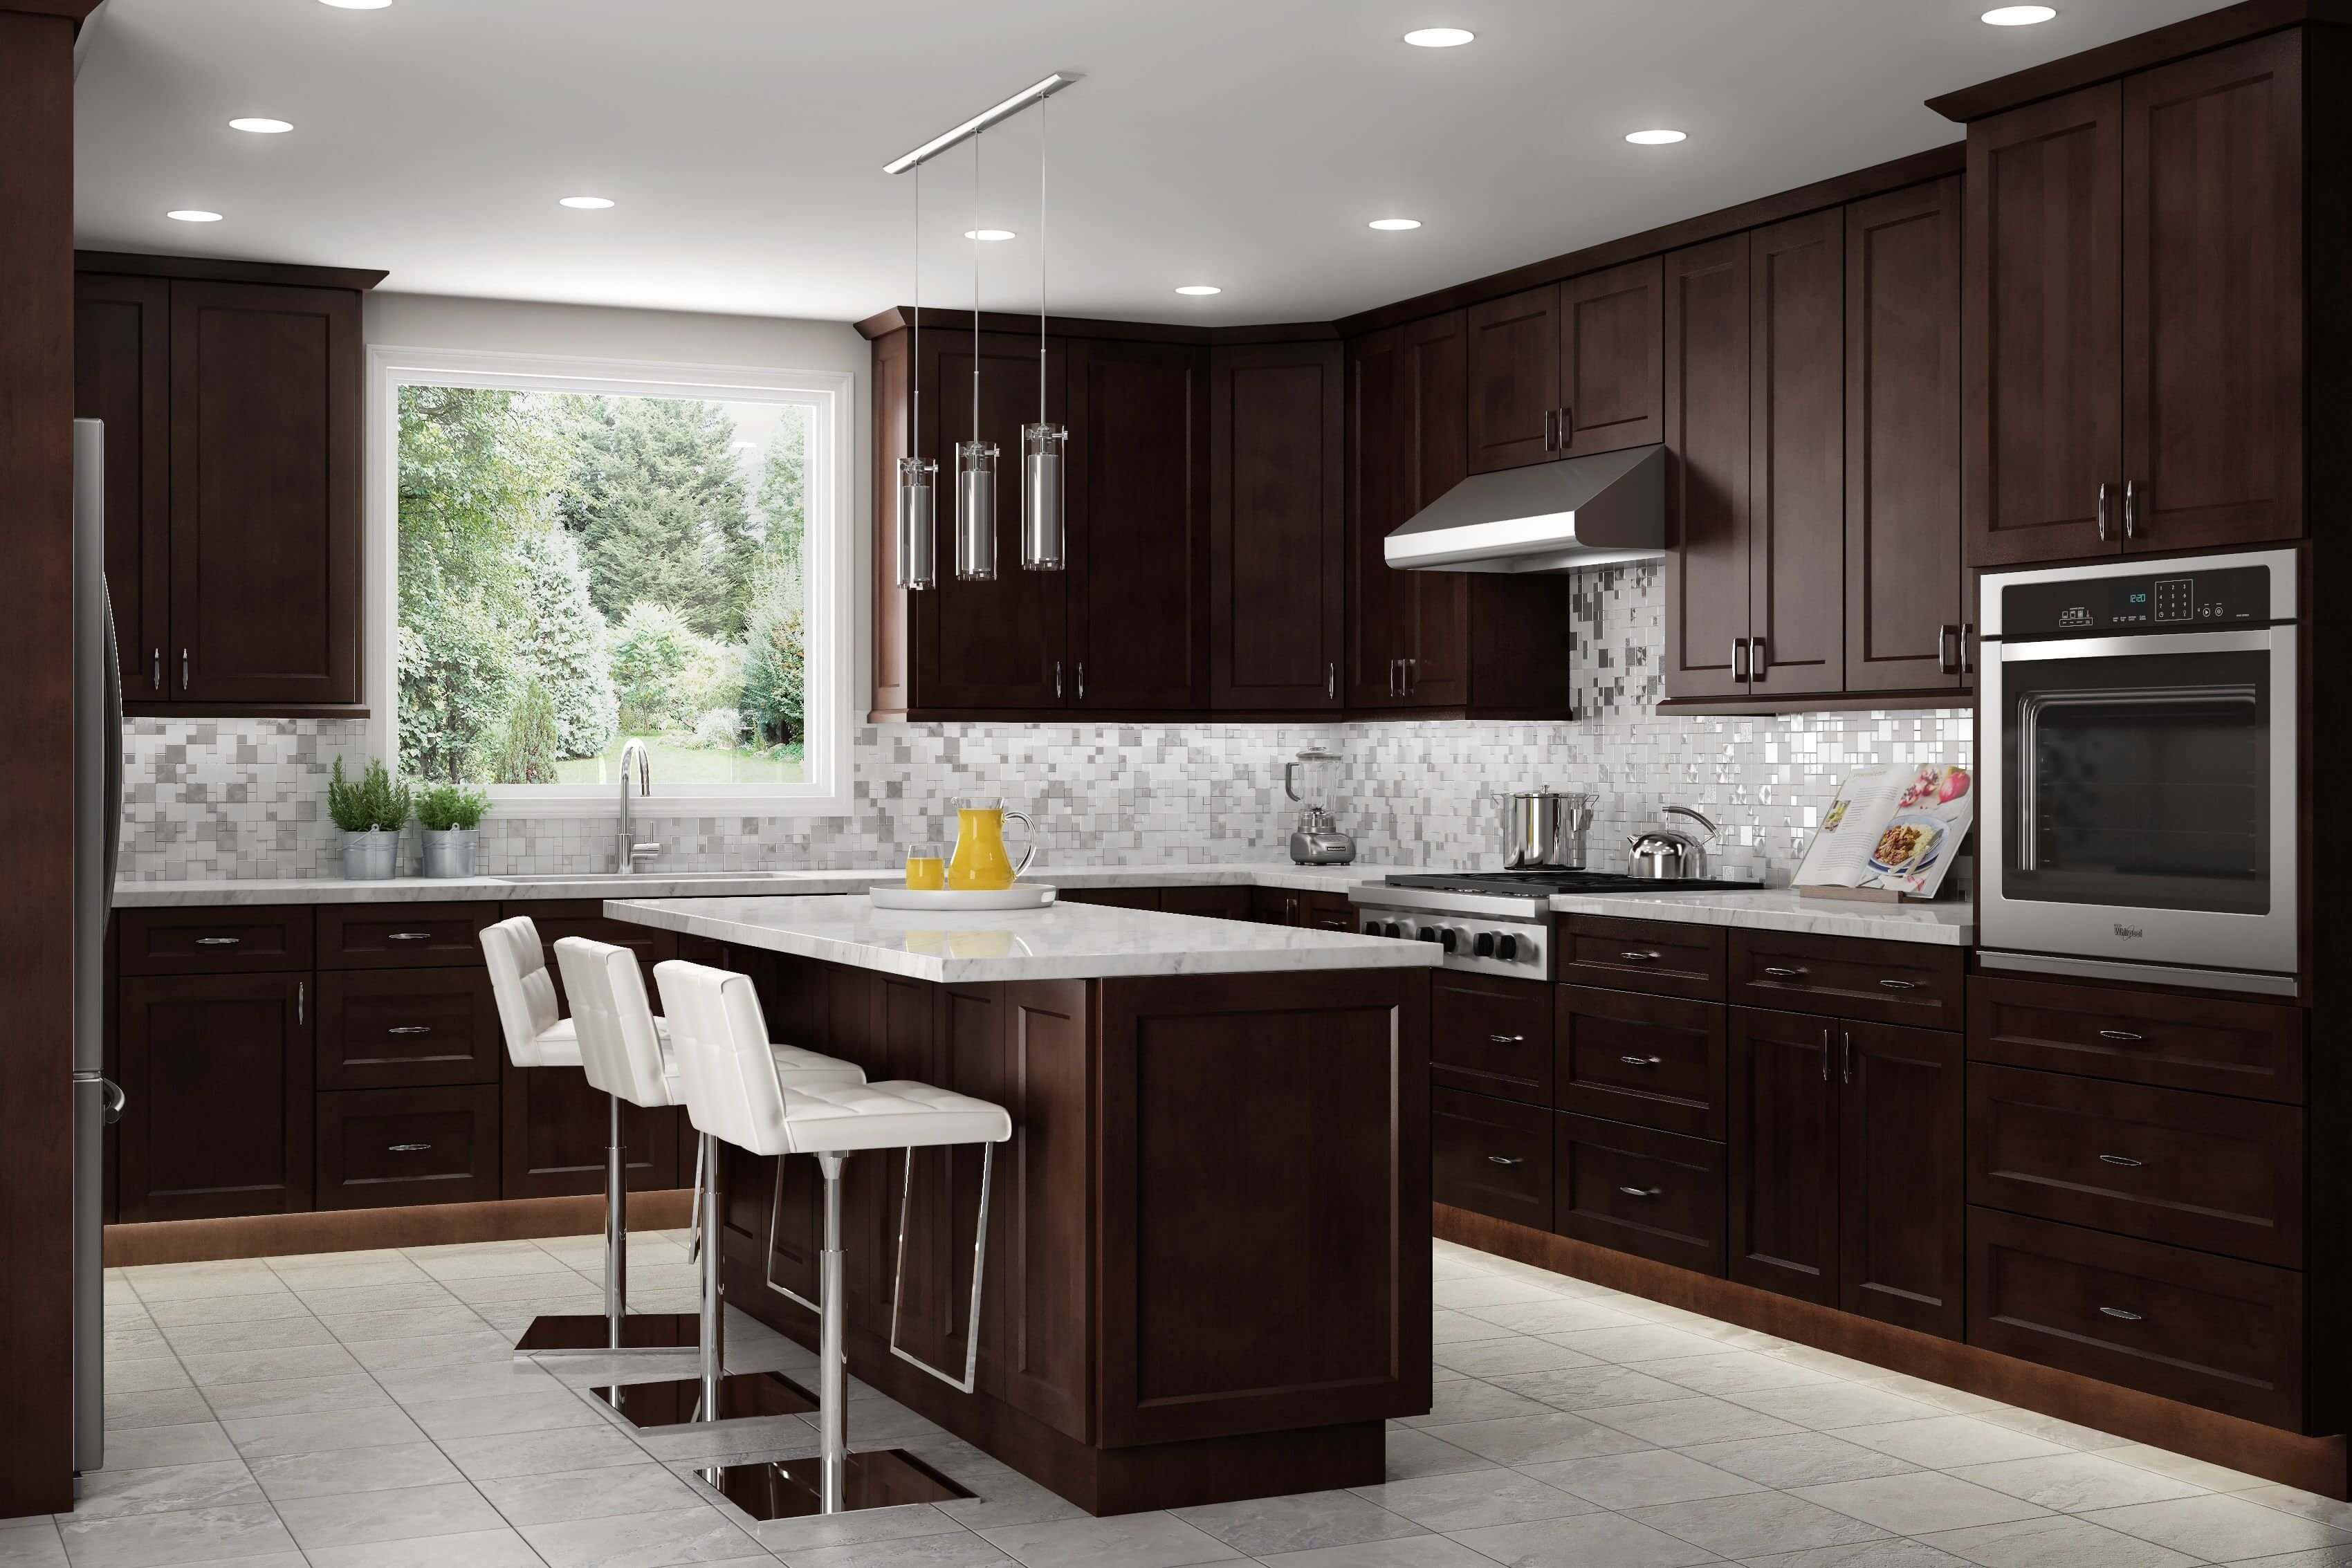 Chestnut Shaker Kitchen Cabinets Chestnut Shaker Rta Kitchen Cabinets Kcd